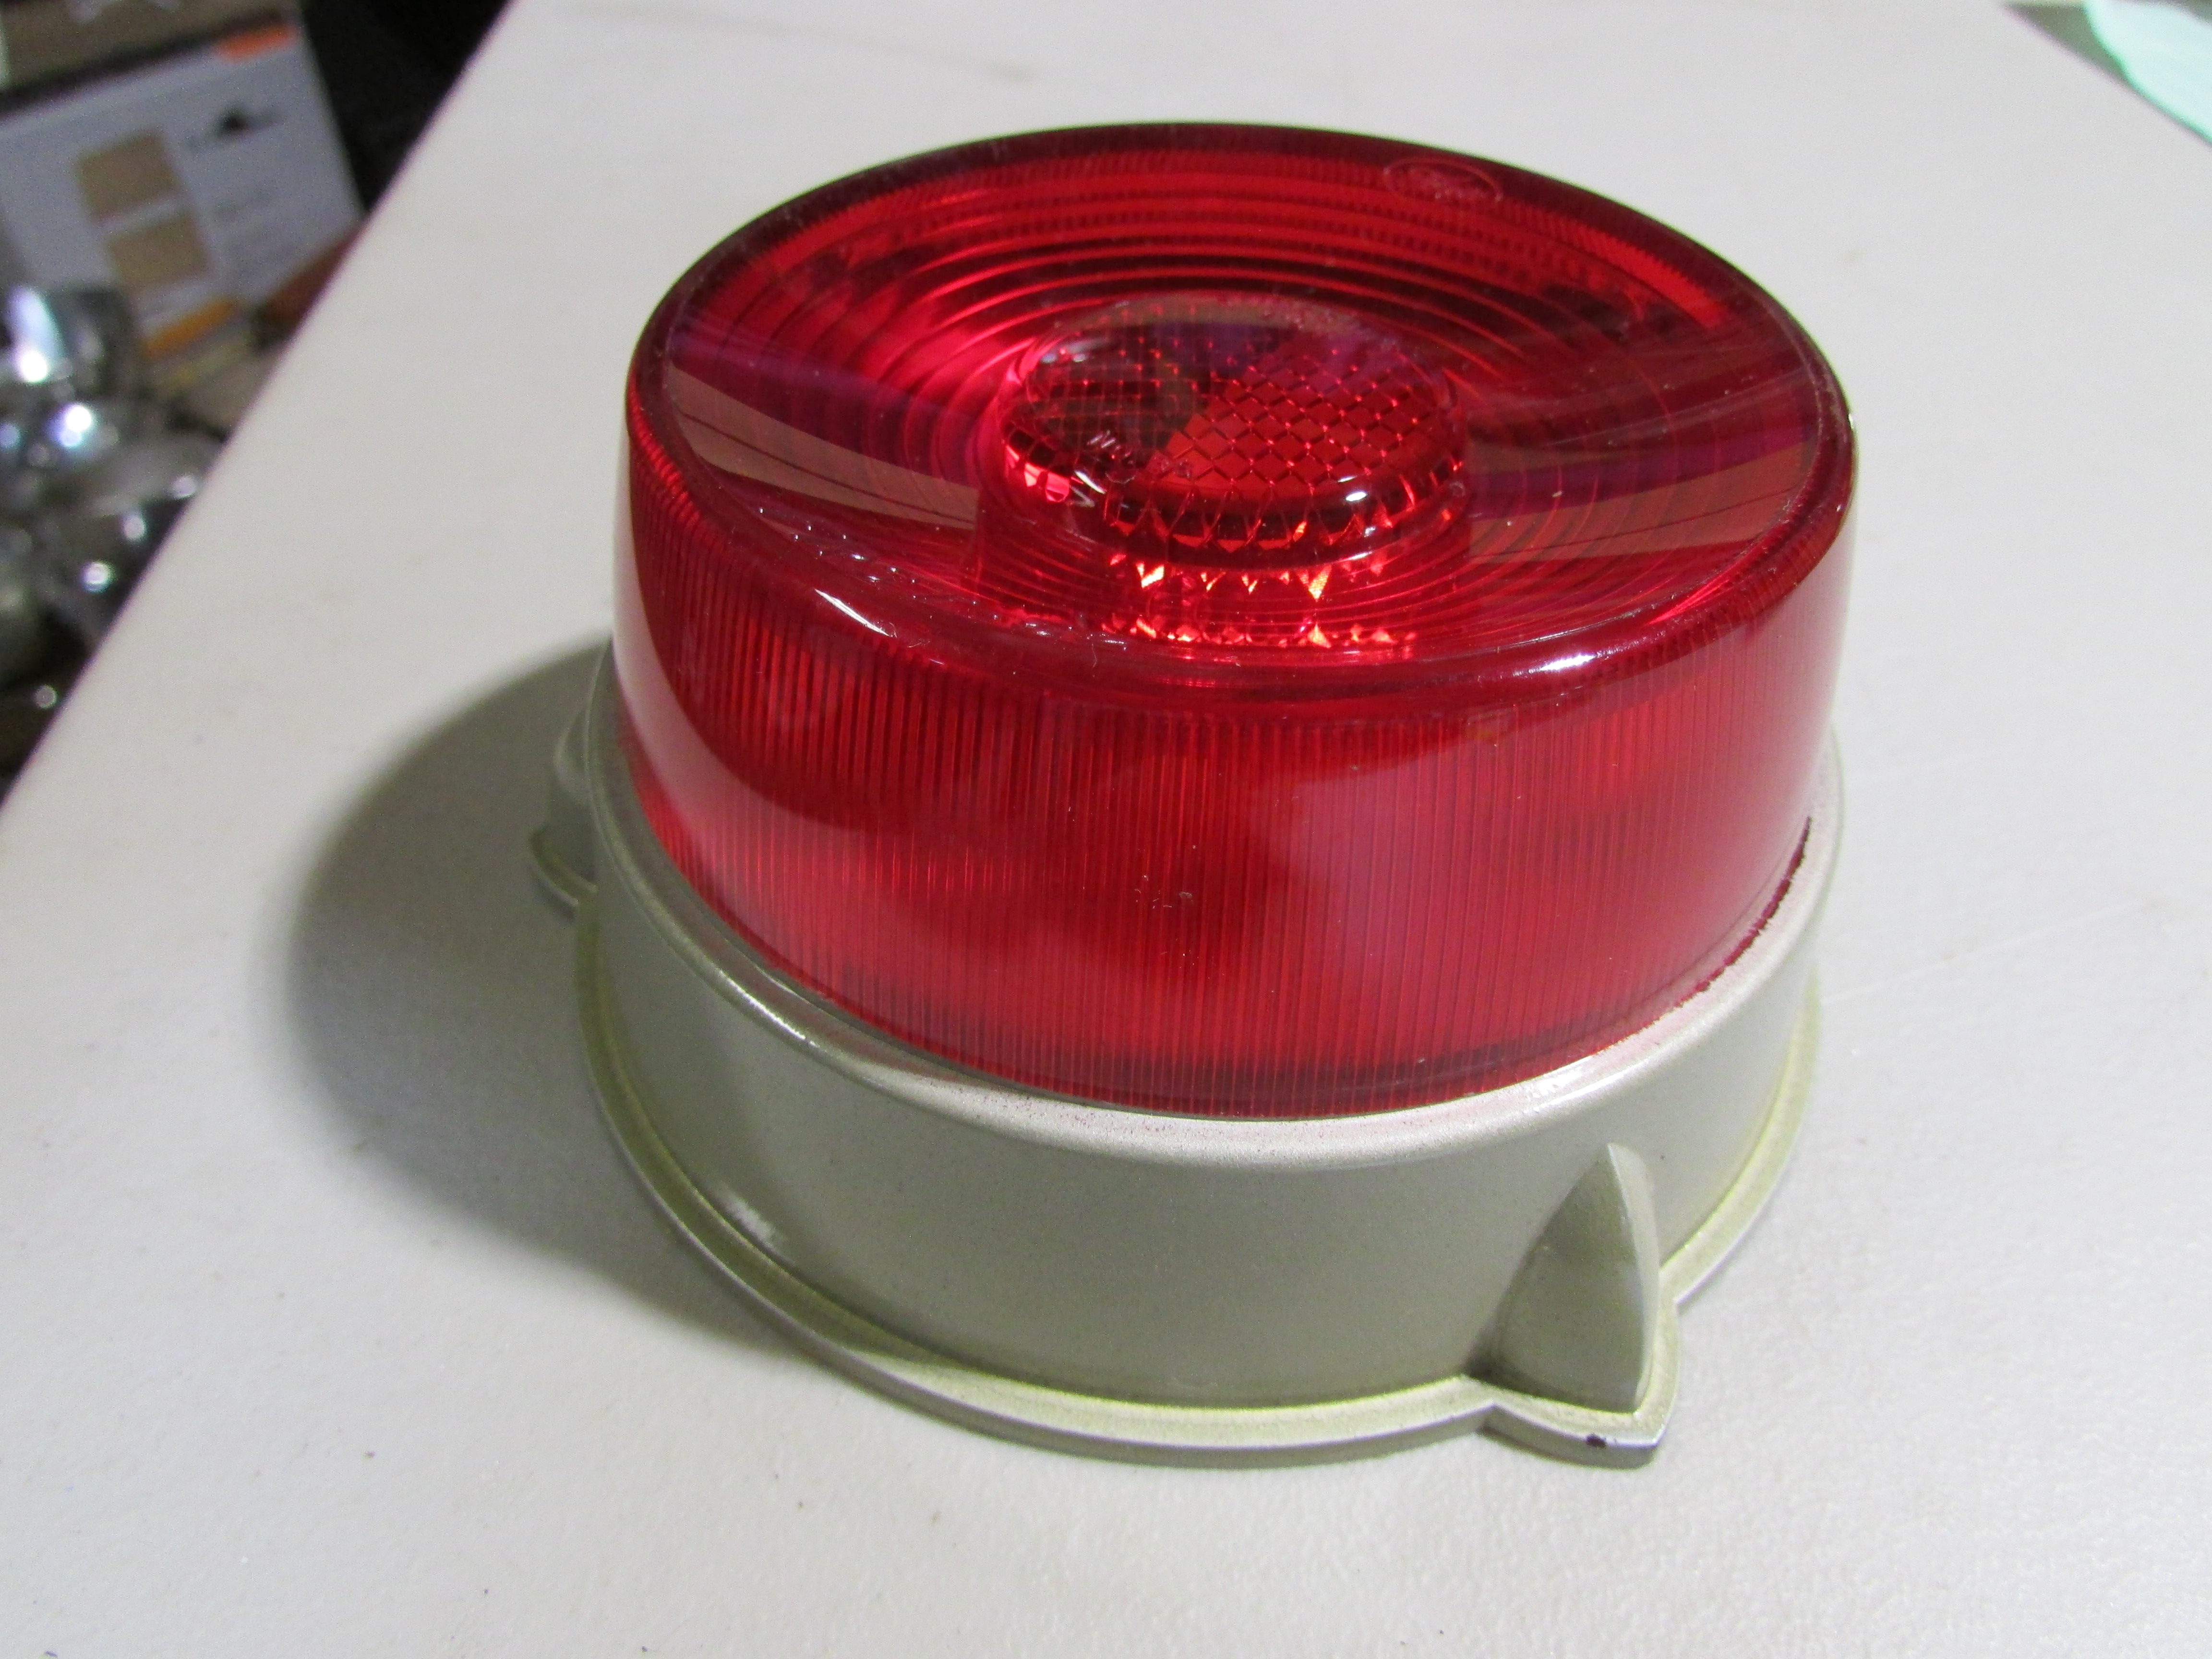 1952 Ford tail light lens